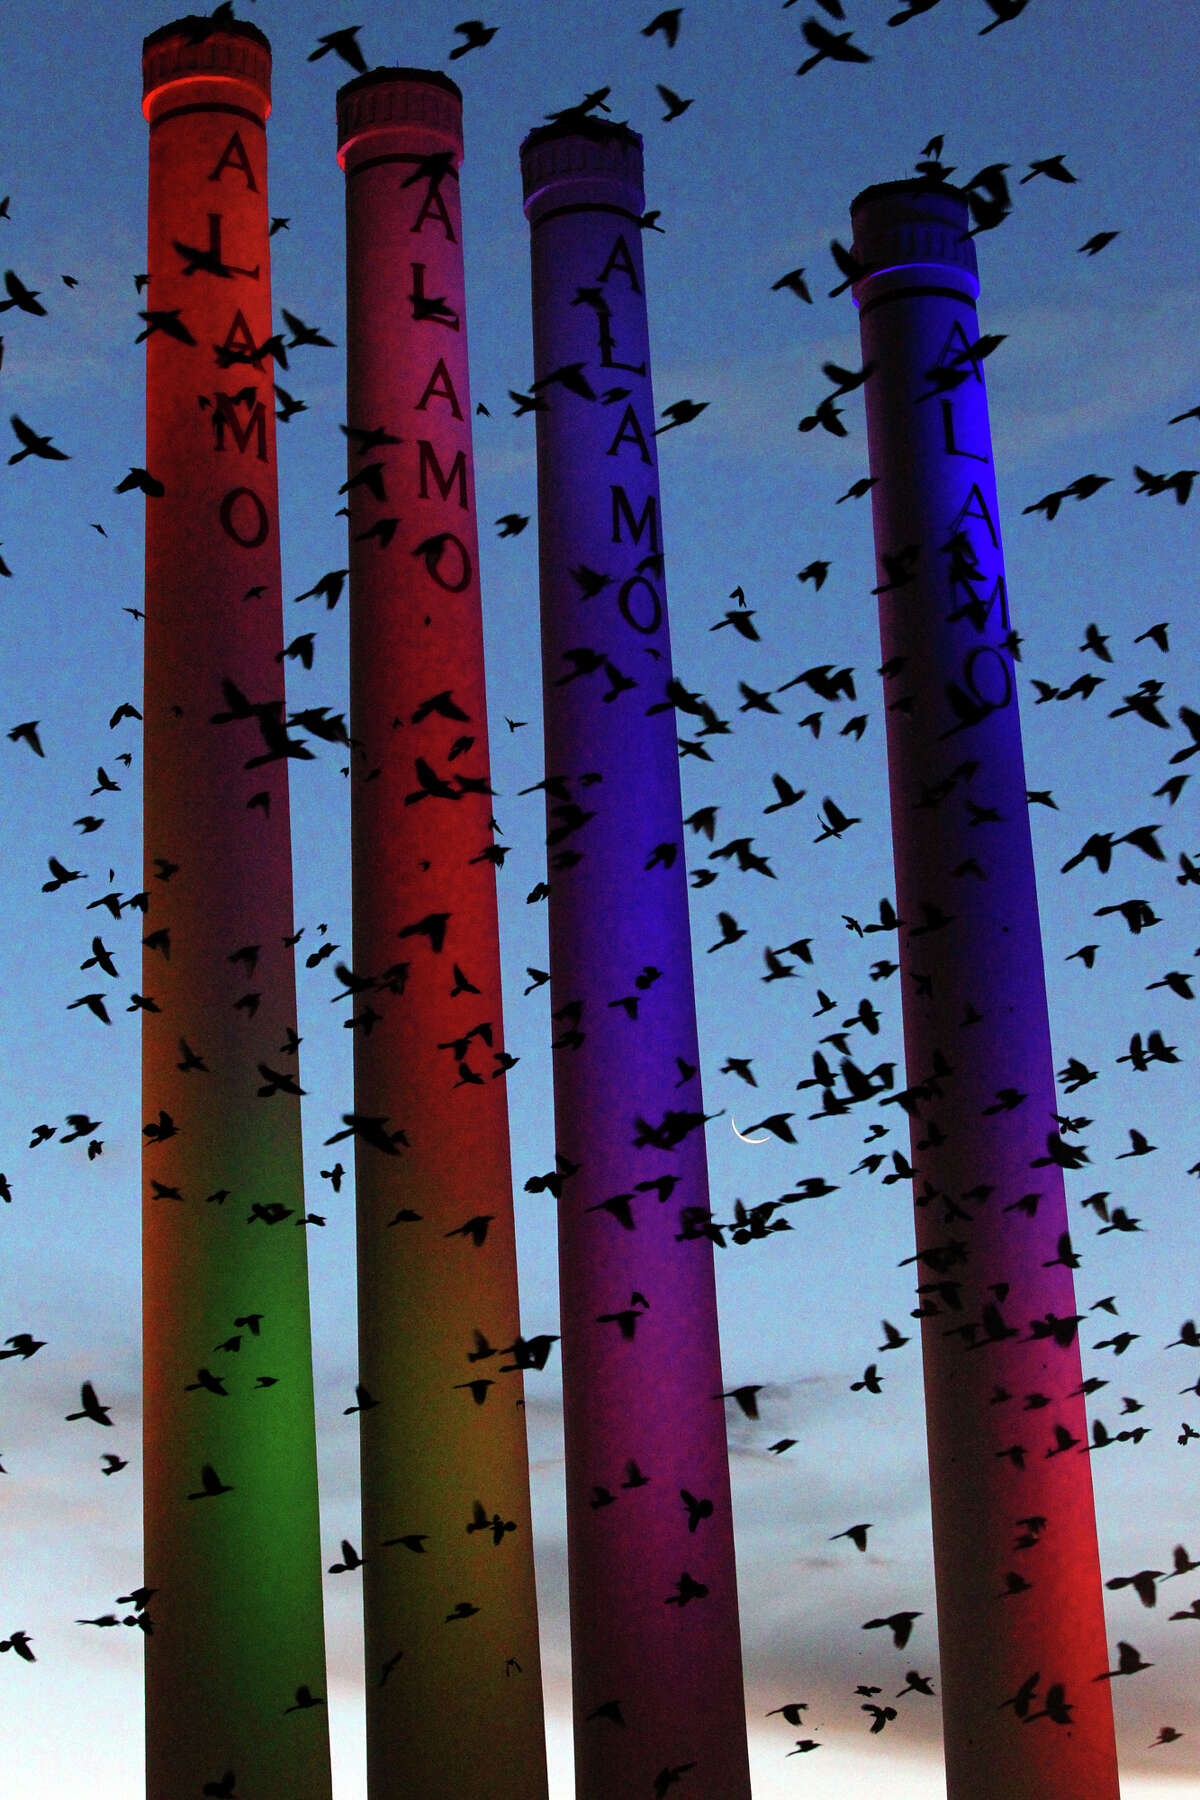 A flock birds flies in front of the smokestacks at the Alamo Quarry Market Tuesday Morning December 11, 2012.